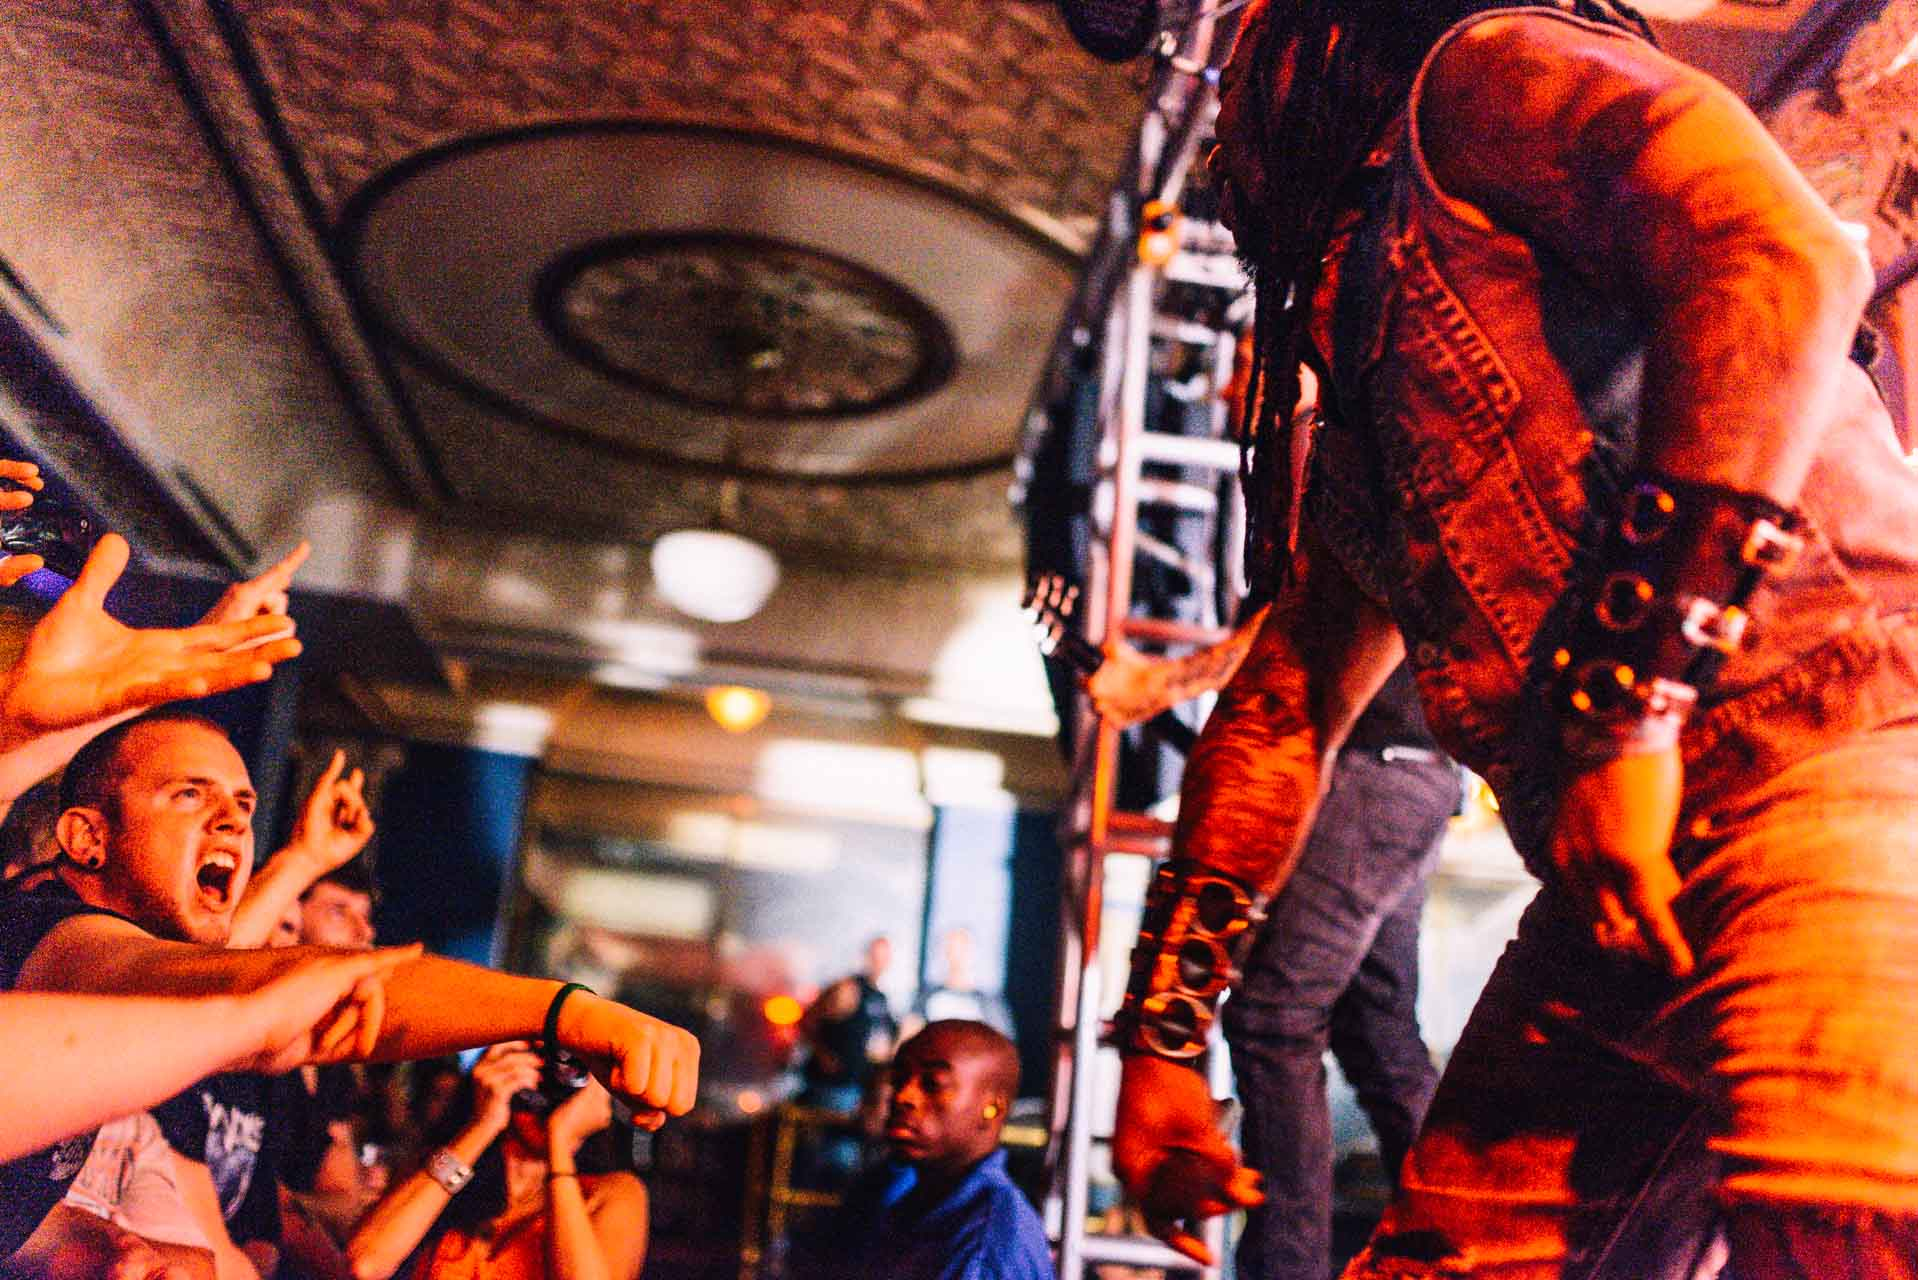 sevendust_live_deluxe_indianapolis_2013-23